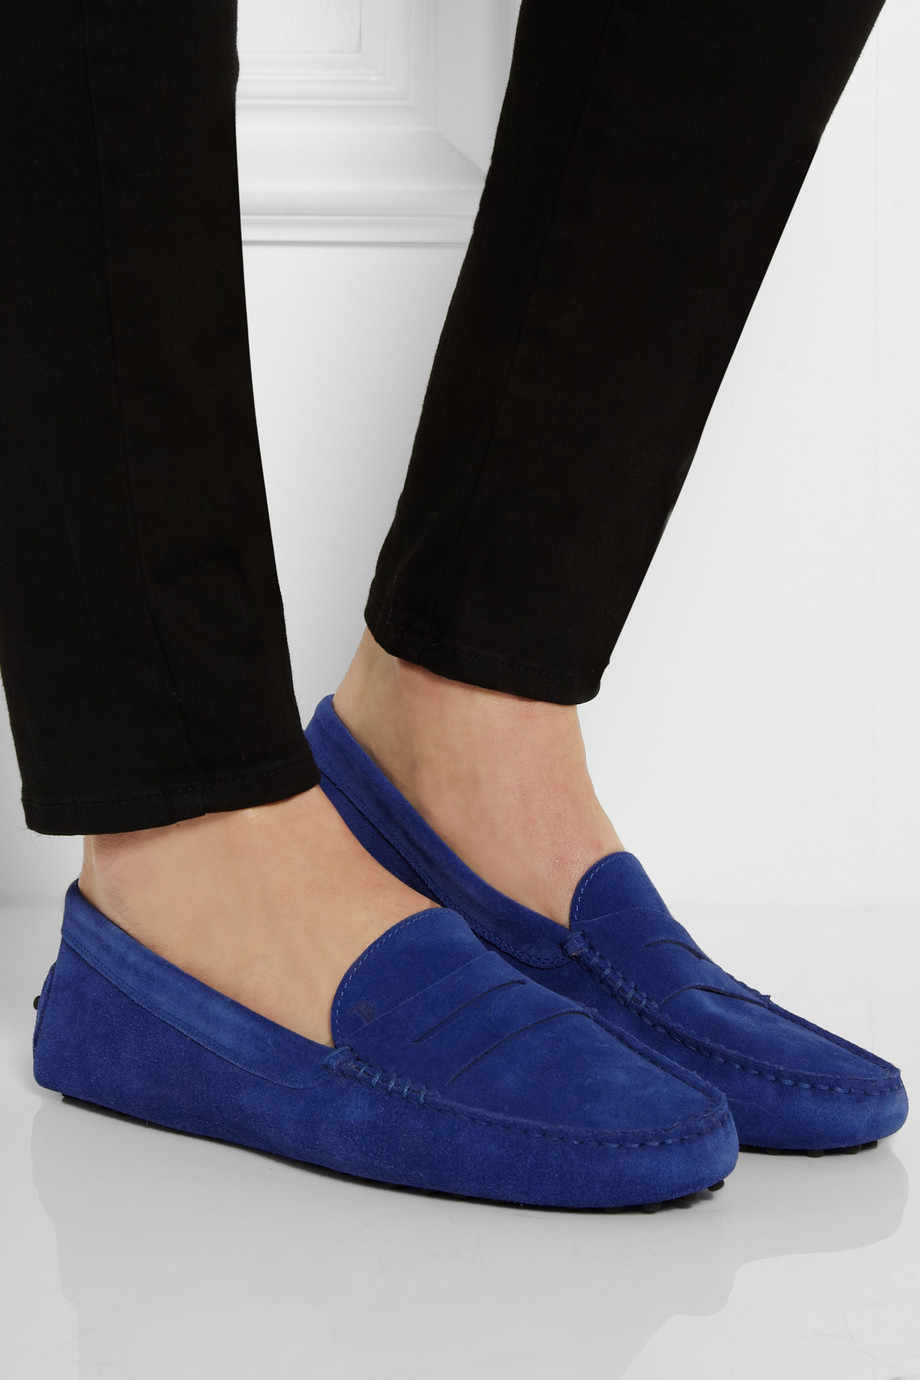 Gommino loafers - Blue Tod's S5MzwBH2Fs